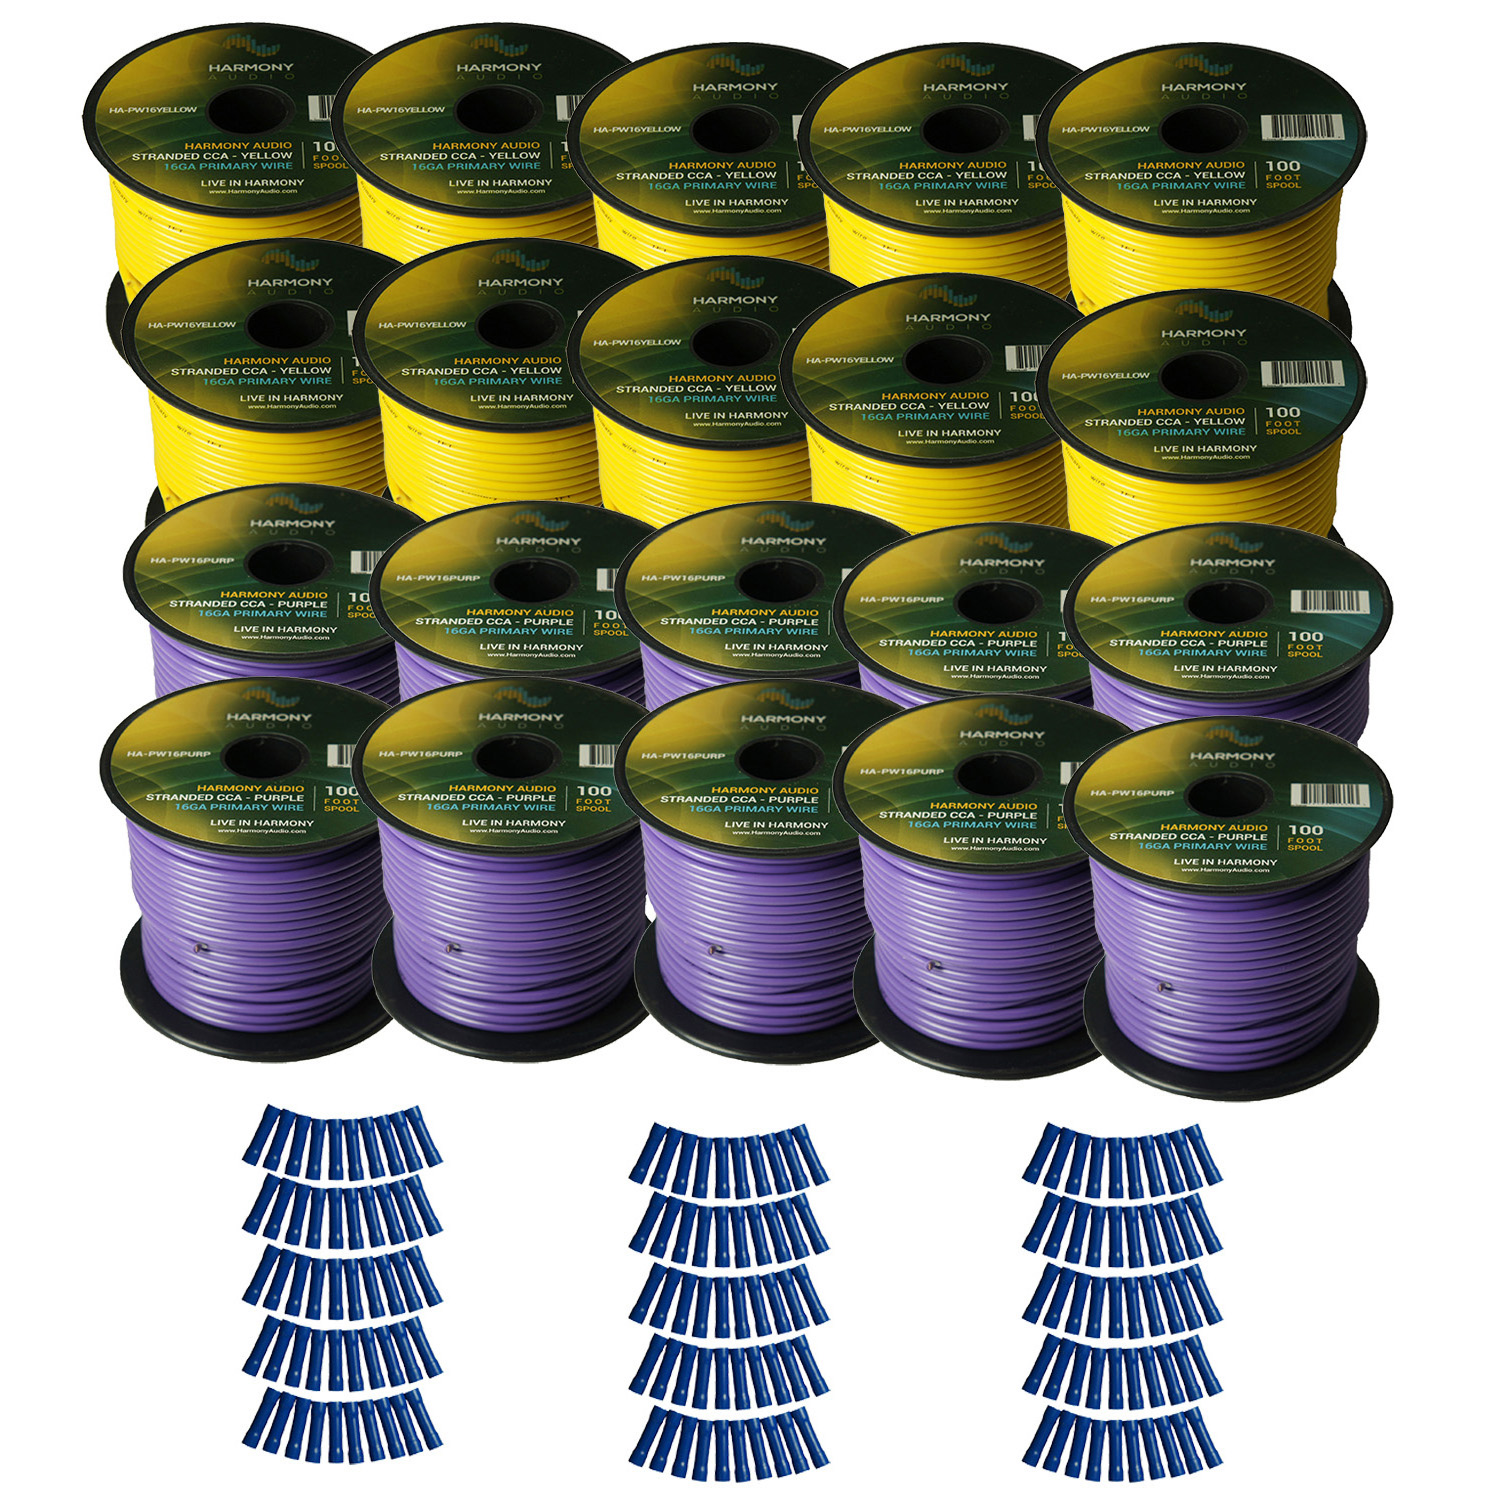 Harmony Audio Primary Single Conductor 16 Gauge Power or Ground Wire - 20 Rolls - 2000 Feet - Yellow & Purple for Car Audio / Trailer / Model Train / Remote